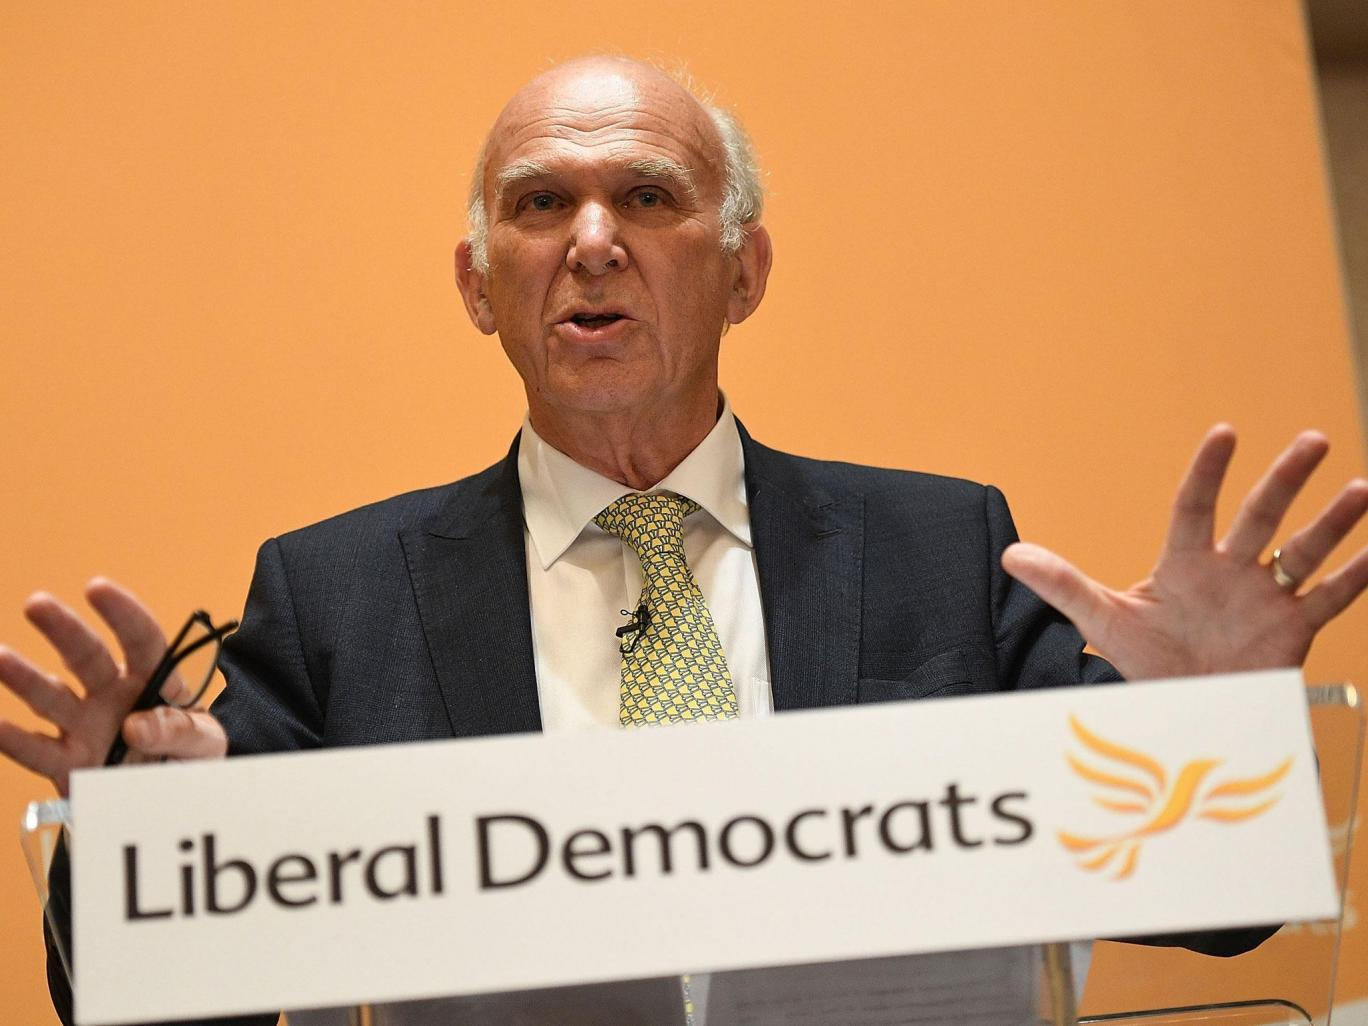 The Liberal Democrats must find a new message to maintain relevance